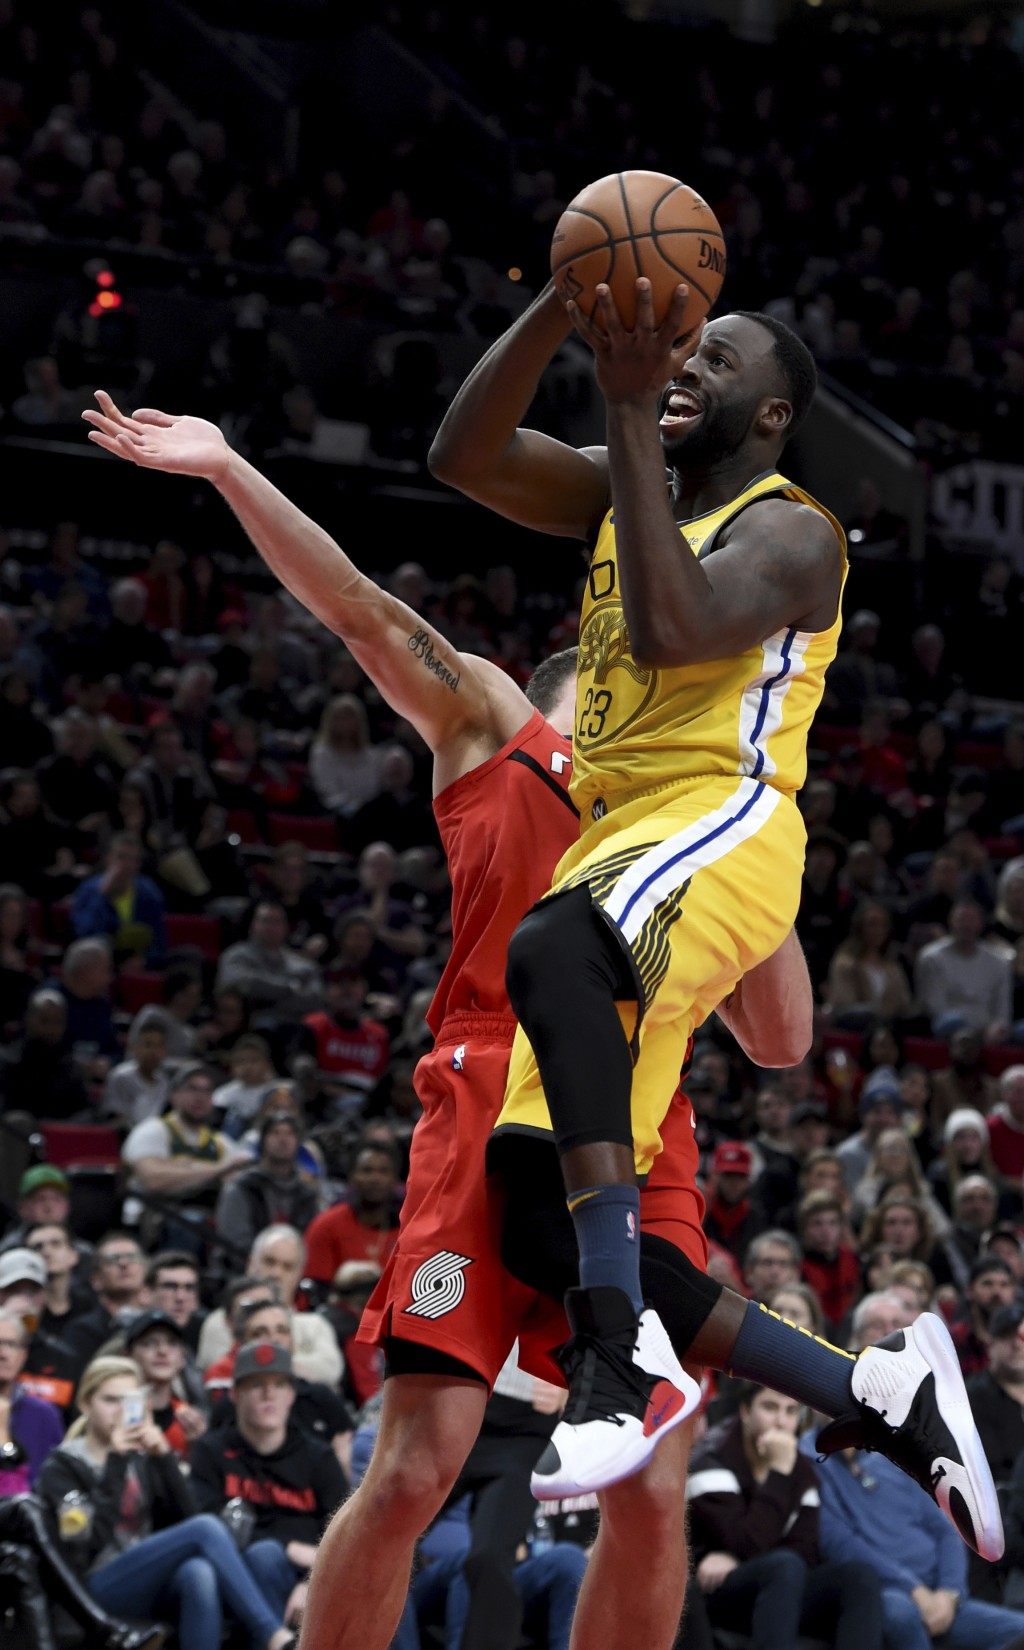 Golden State Warriors forward Draymond Green, right, drives to the basket on Portland Trail Blazers forward Meyers Leonard, left, during the first hal...